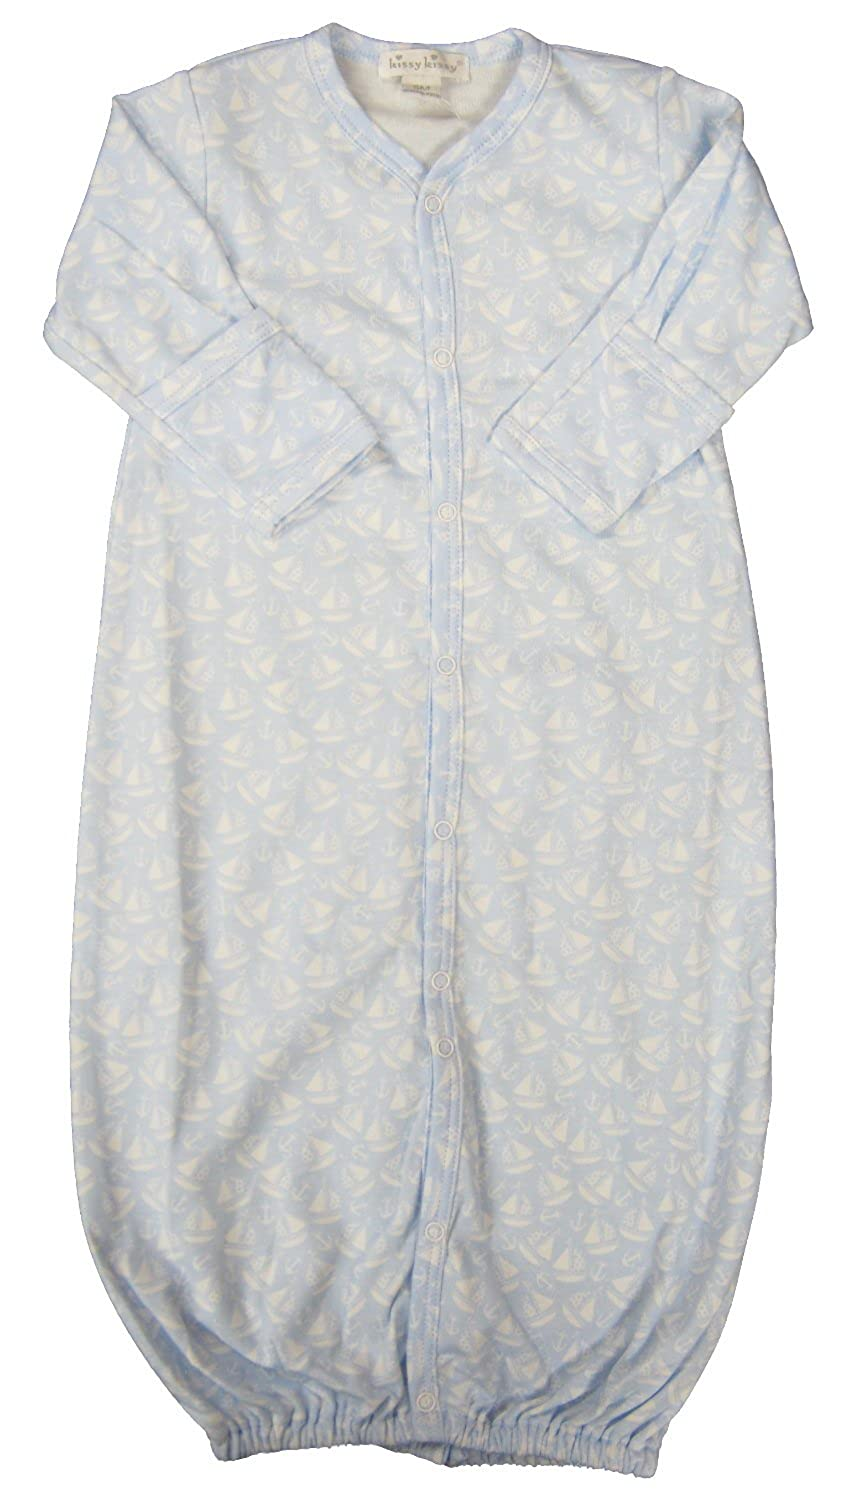 Kissy Kissy Baby-Boys Infant Gone Sailing Print Convertible Gown